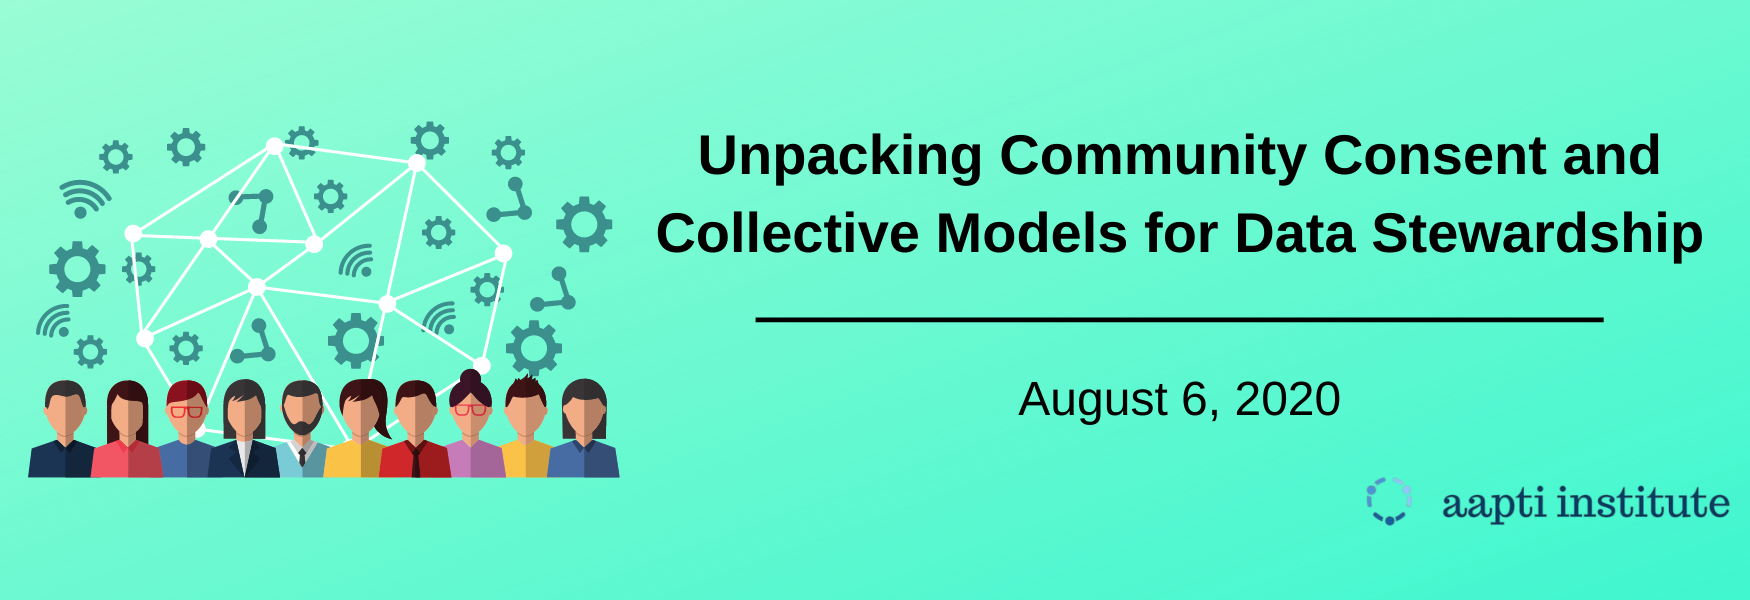 Unpacking Community Consent and Collective Models for Data Stewardship